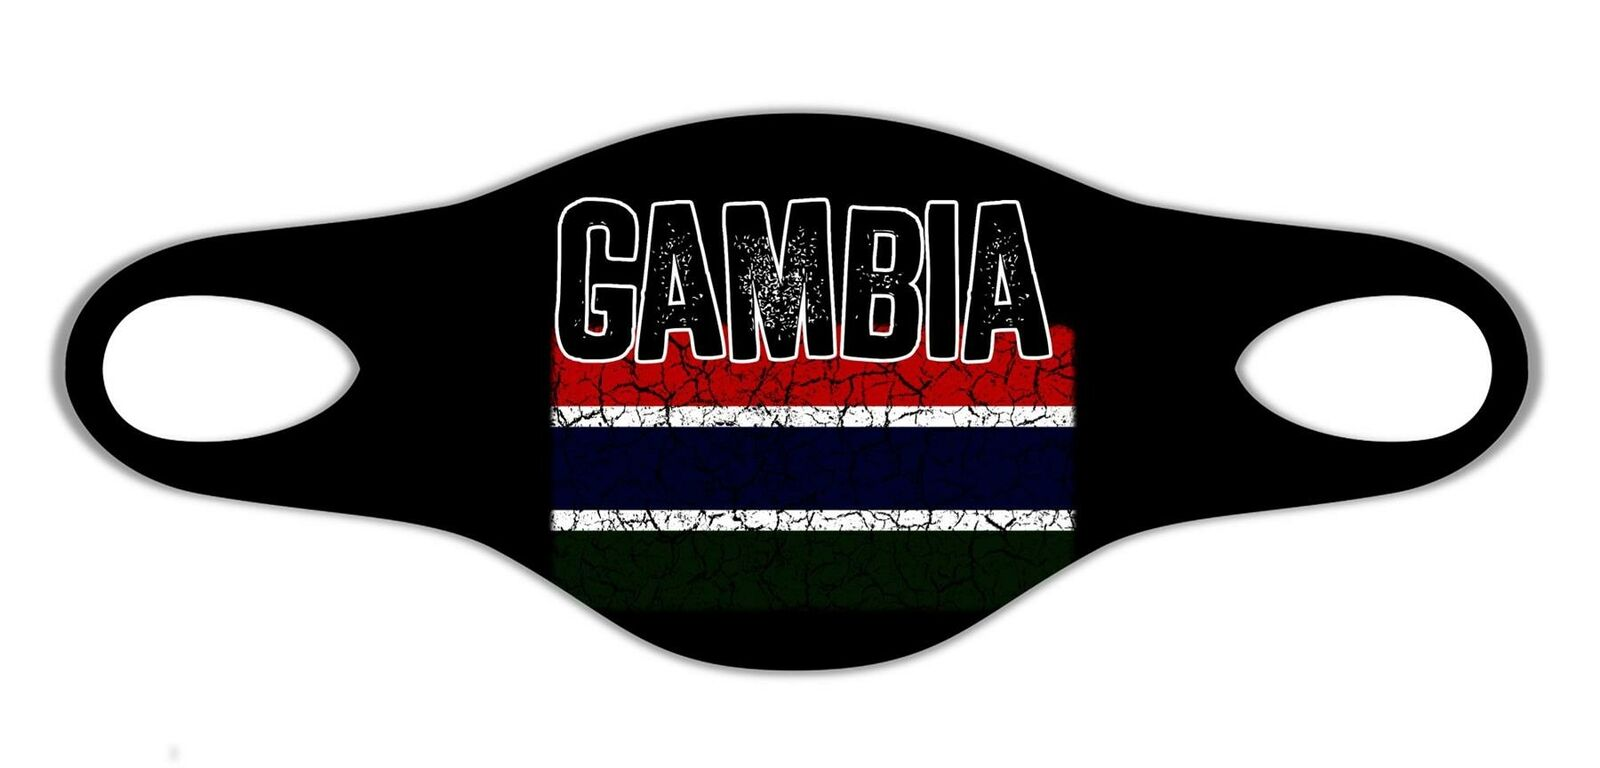 Gambia Patrio Flag Printed Face Mask Protective Reusable Washable Breathable